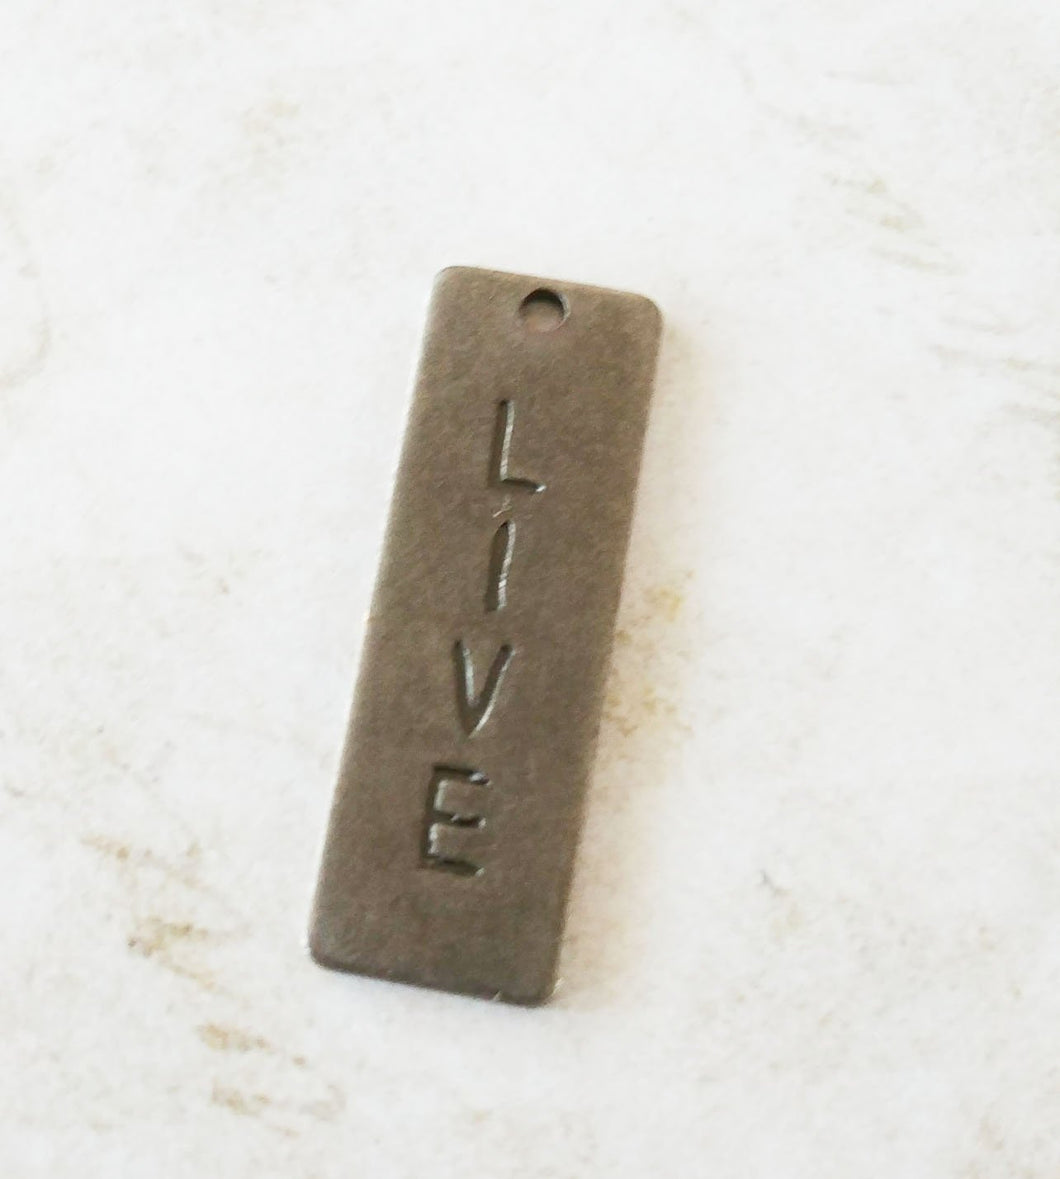 Word Charm Live Charm Silver Word Charm Inspirational Charm Silver Pendant Rectangle Word Charm Live Pendant